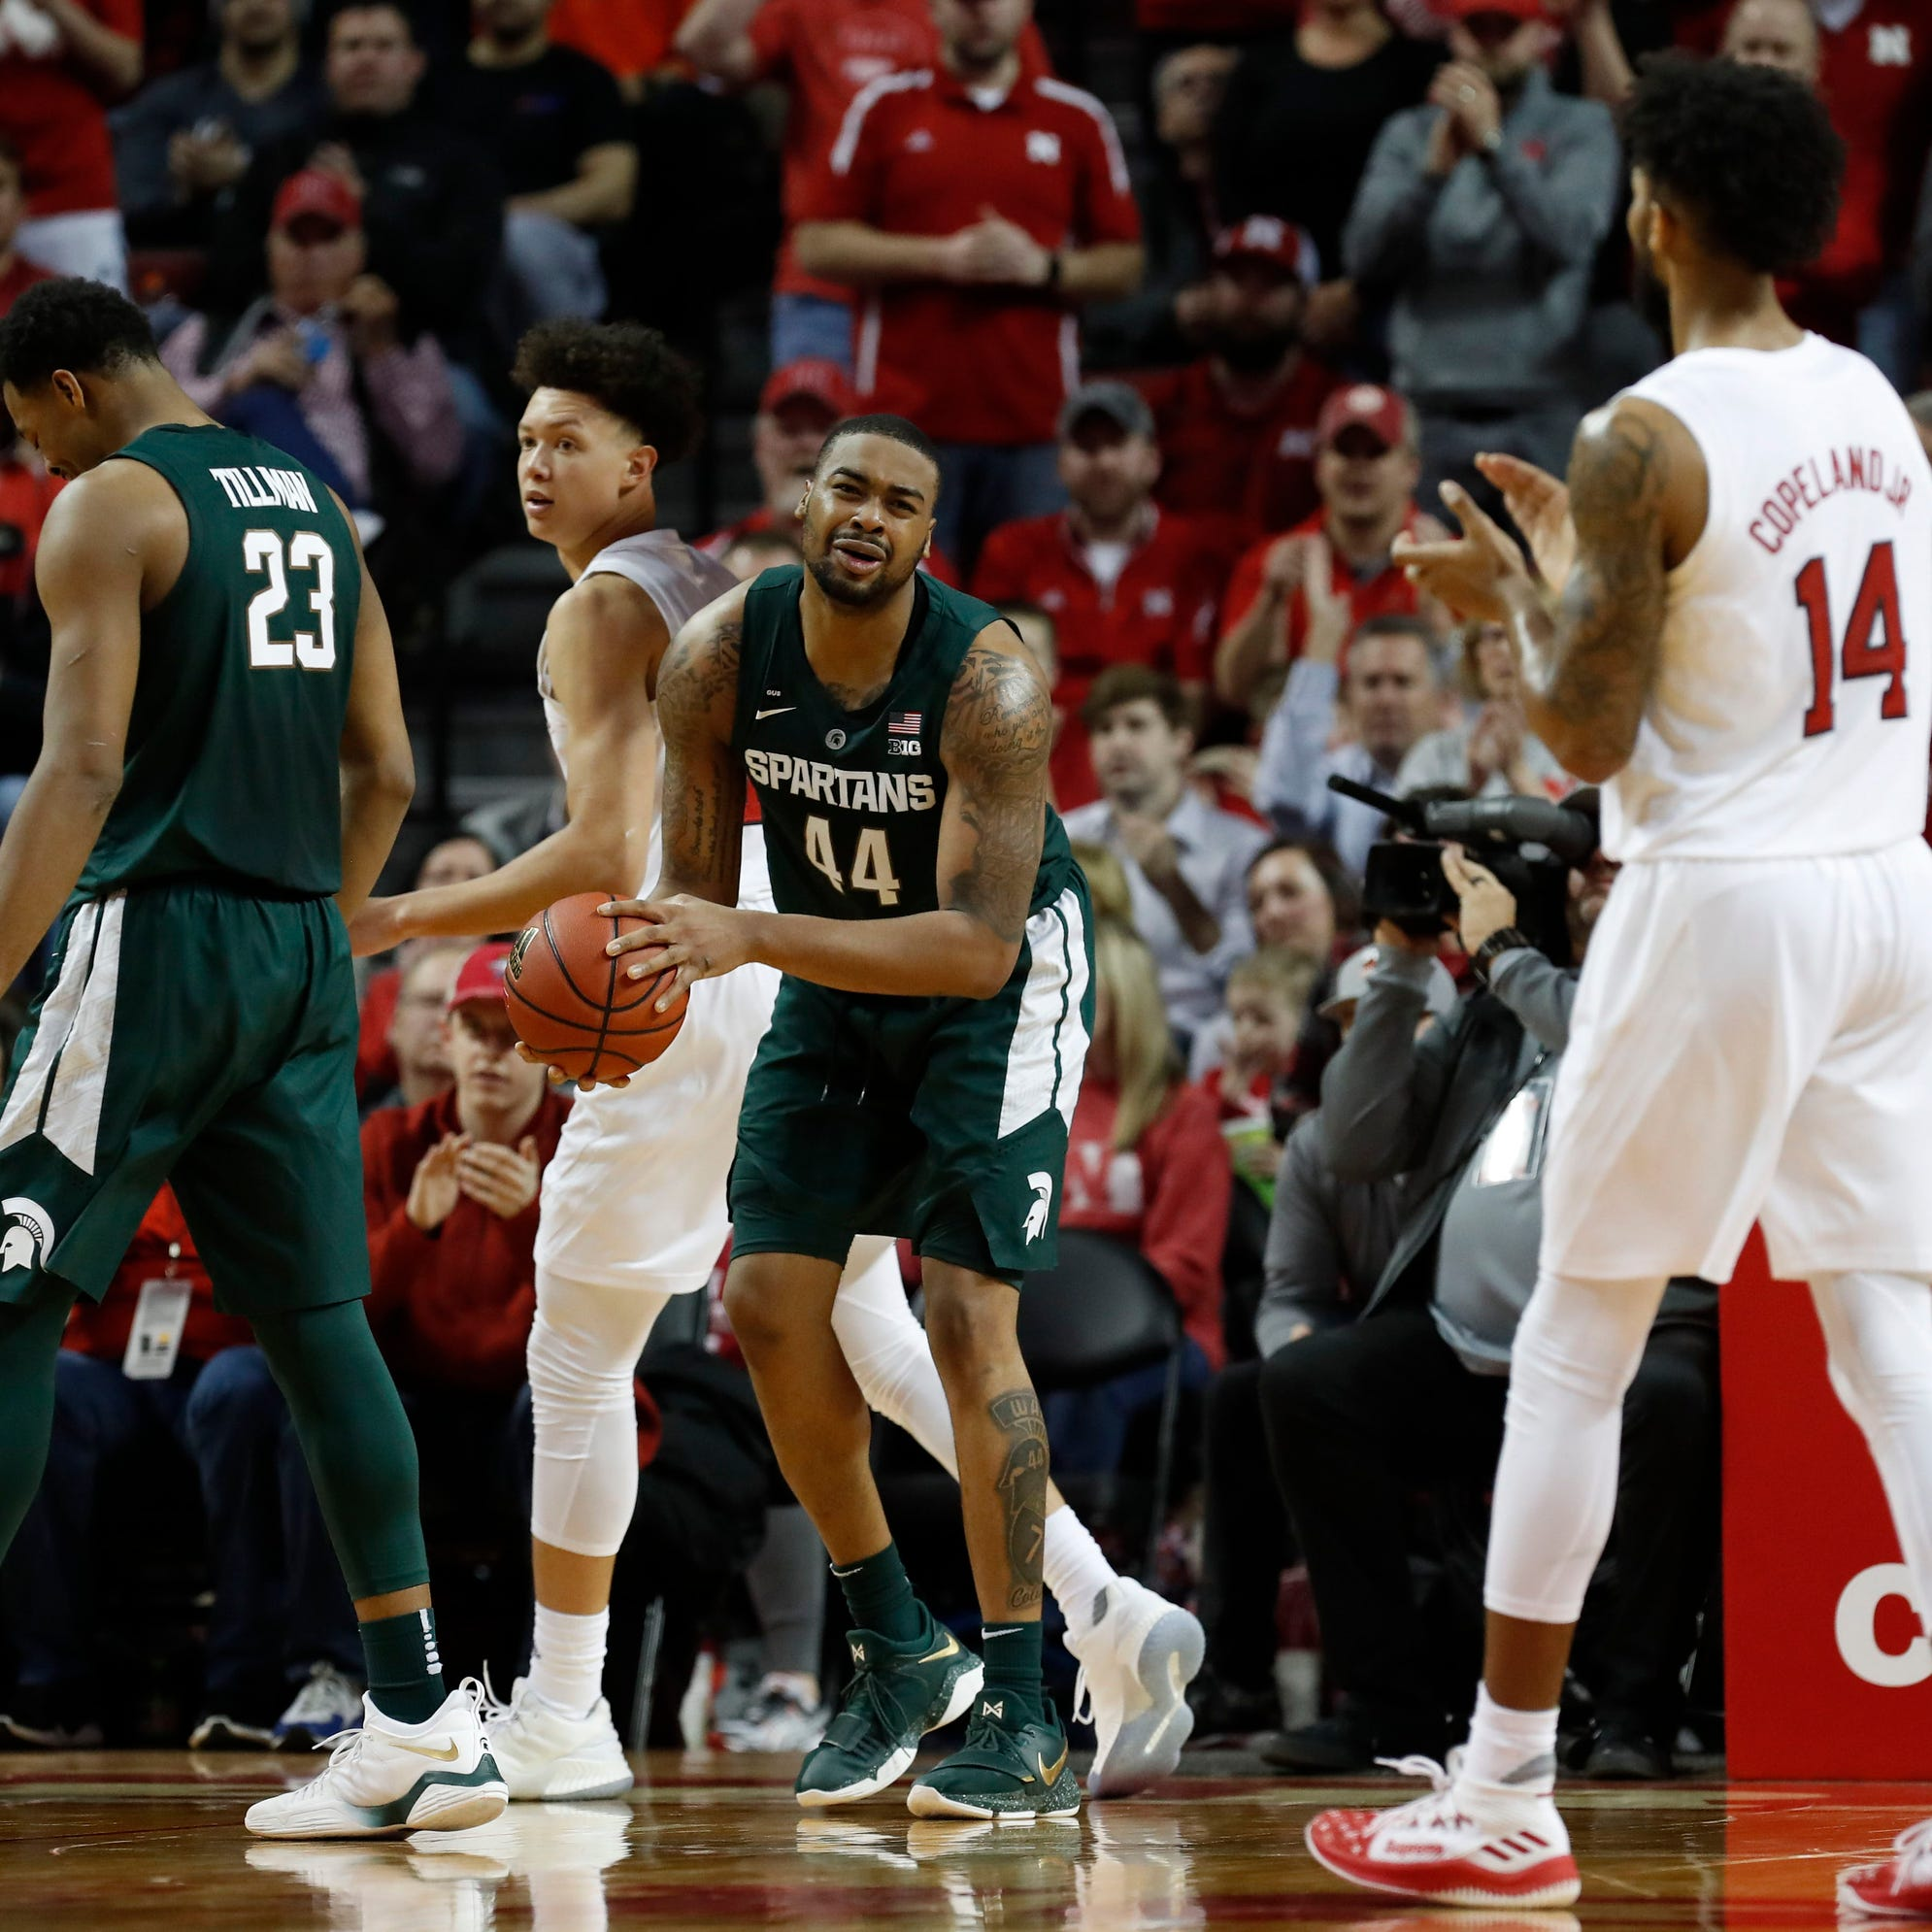 First-place Michigan State faces another tough test: No. 19 Maryland